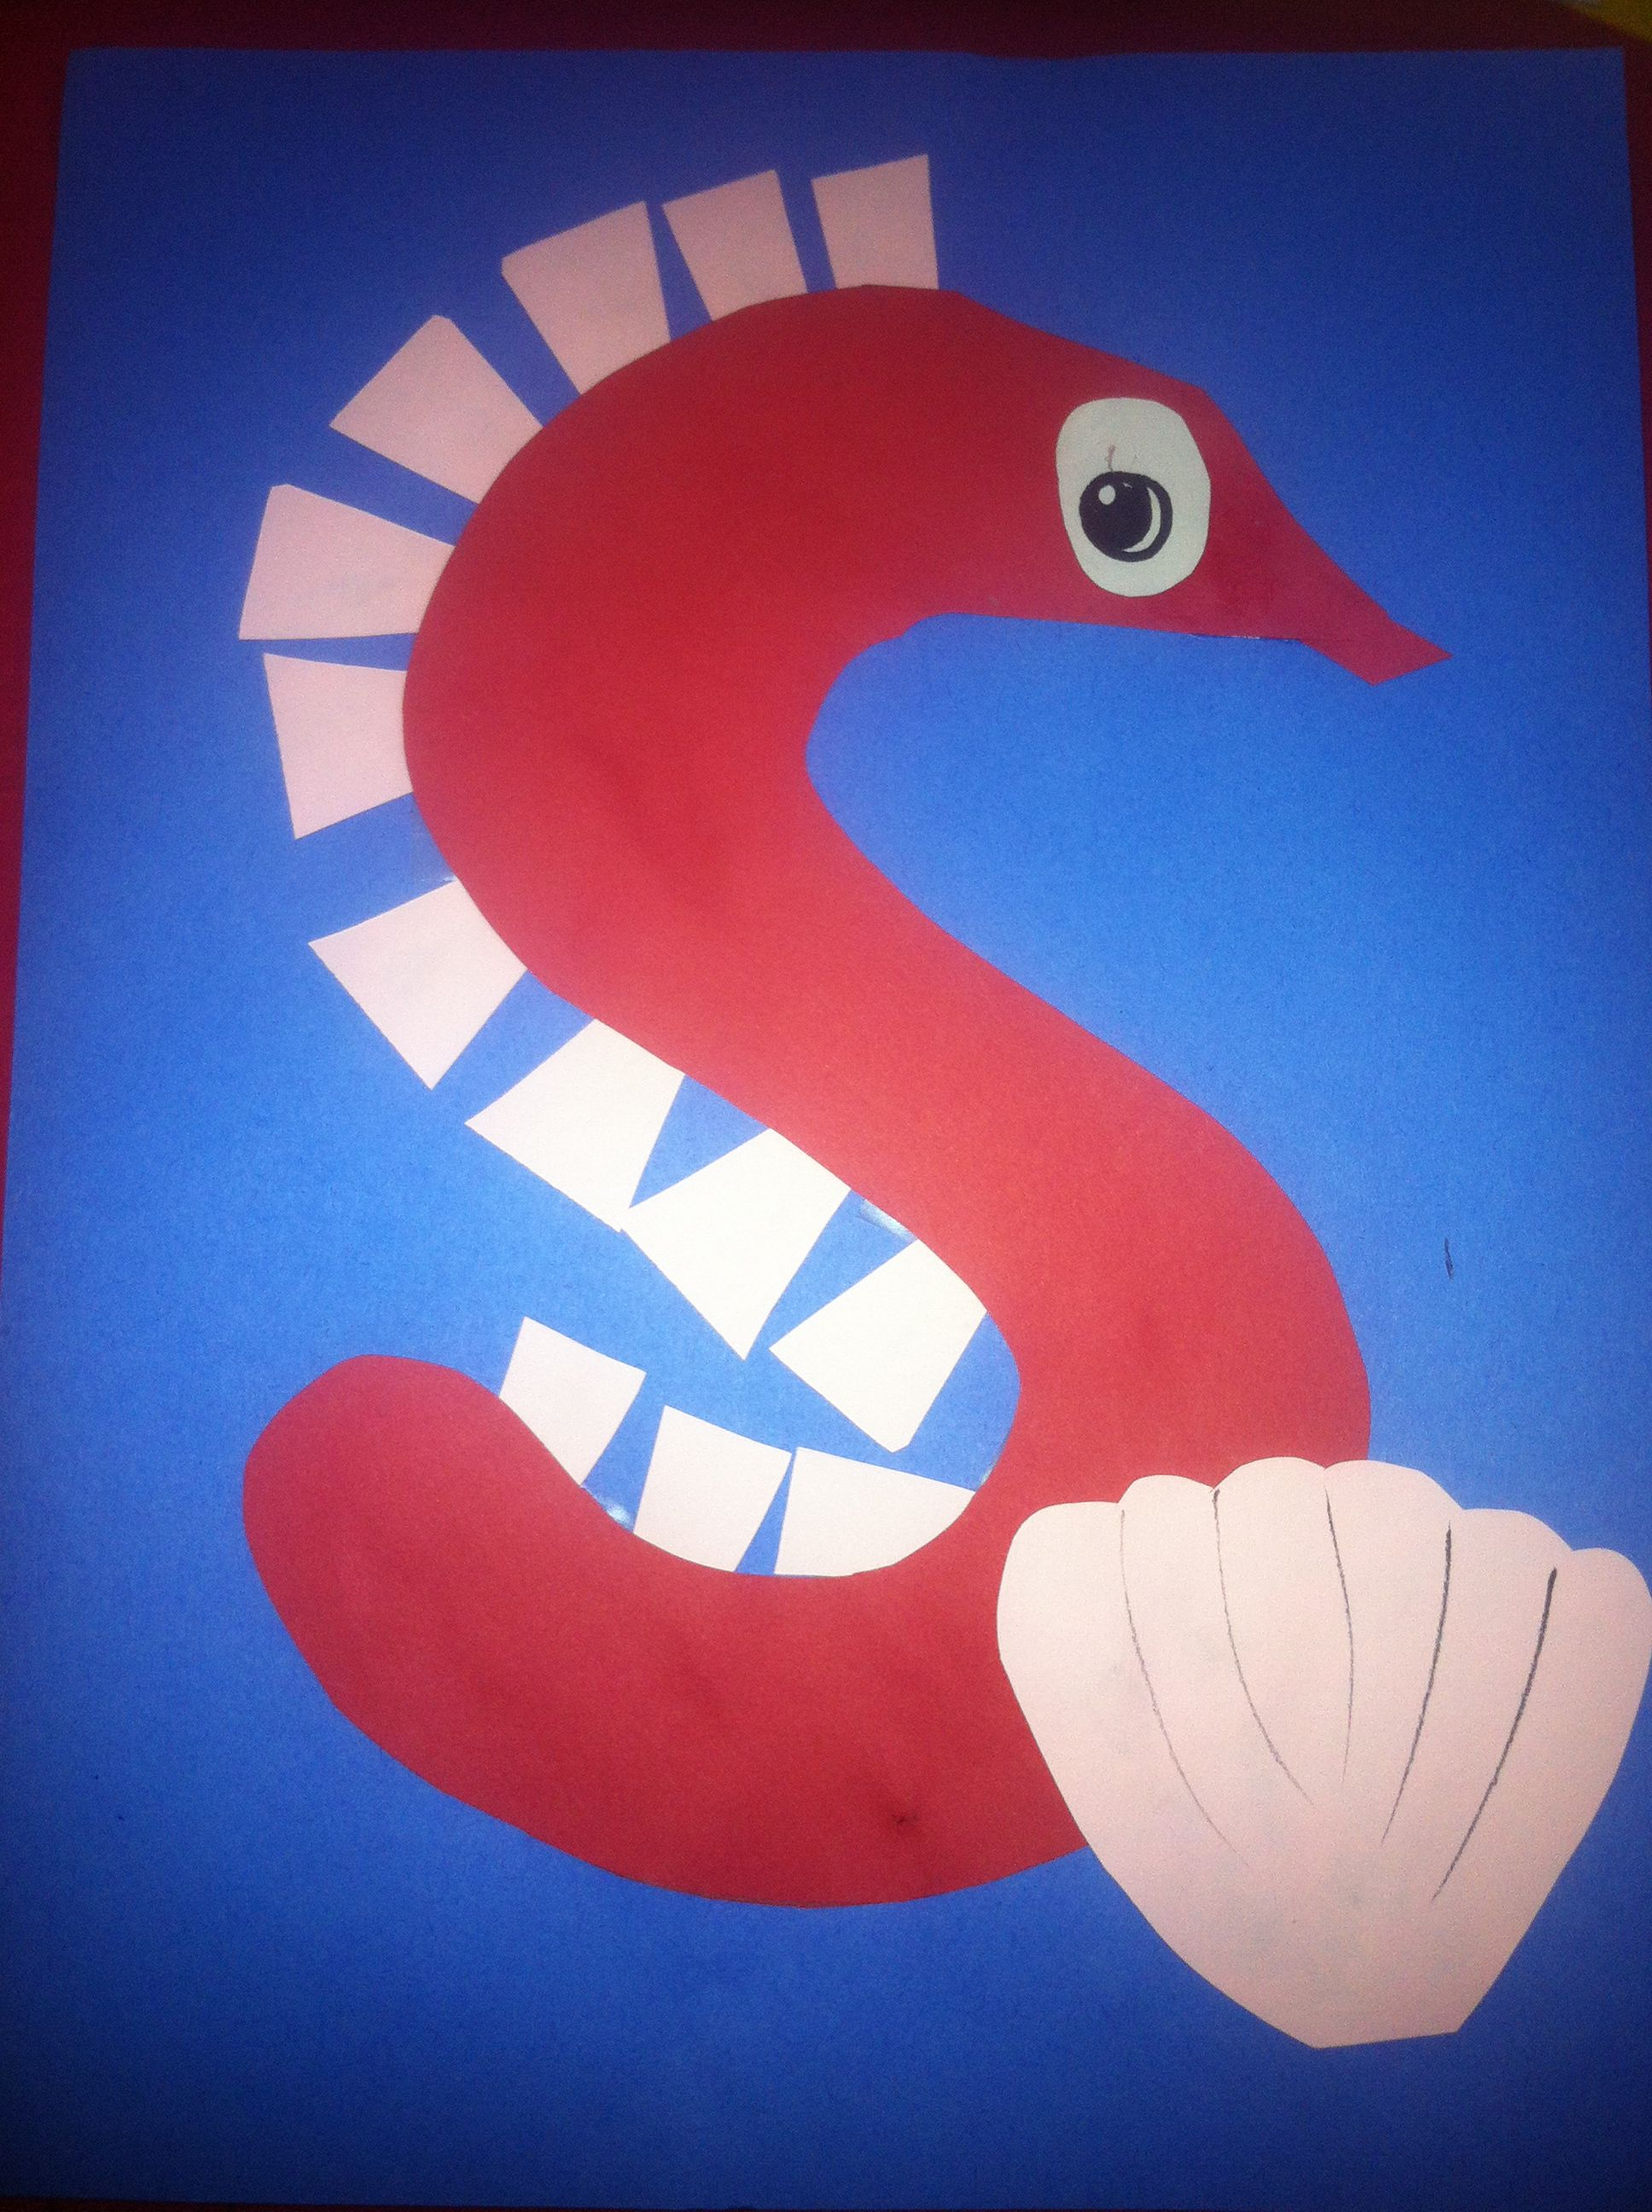 Letter s arts and crafts for preschoolers - Letter S Is For Seahorse